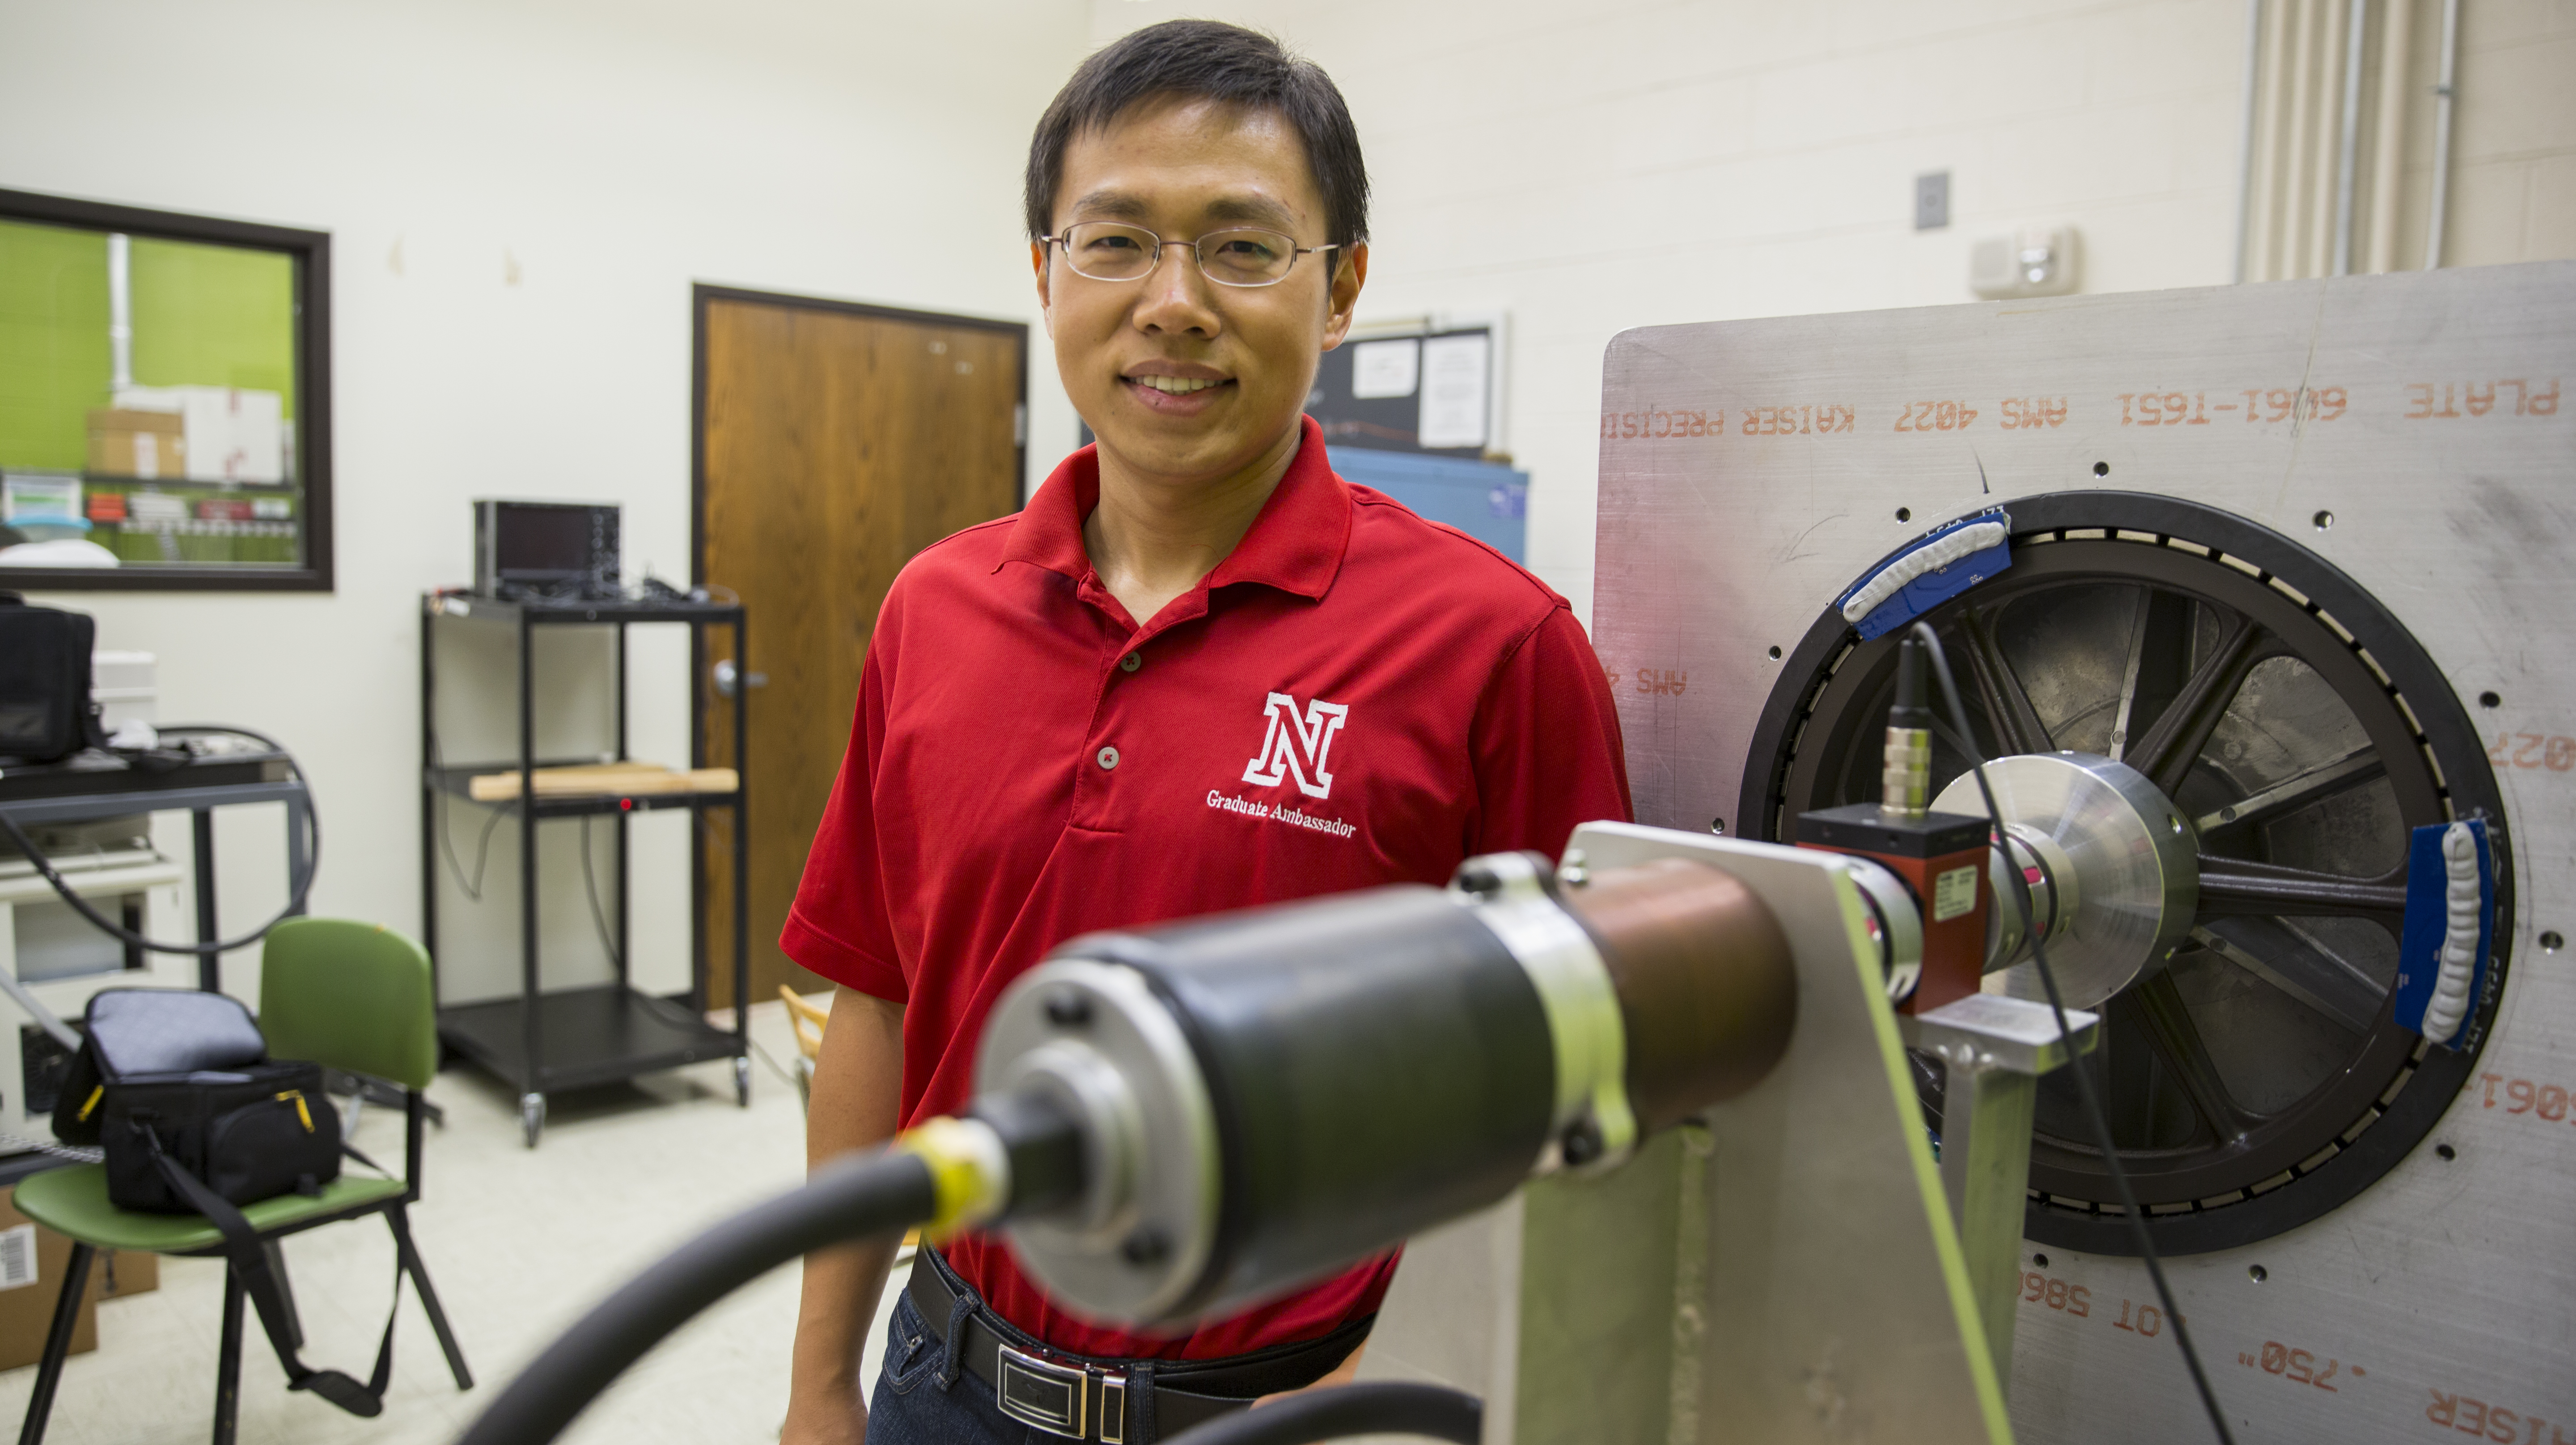 turbine system recycles spillage to improve energy efficiency